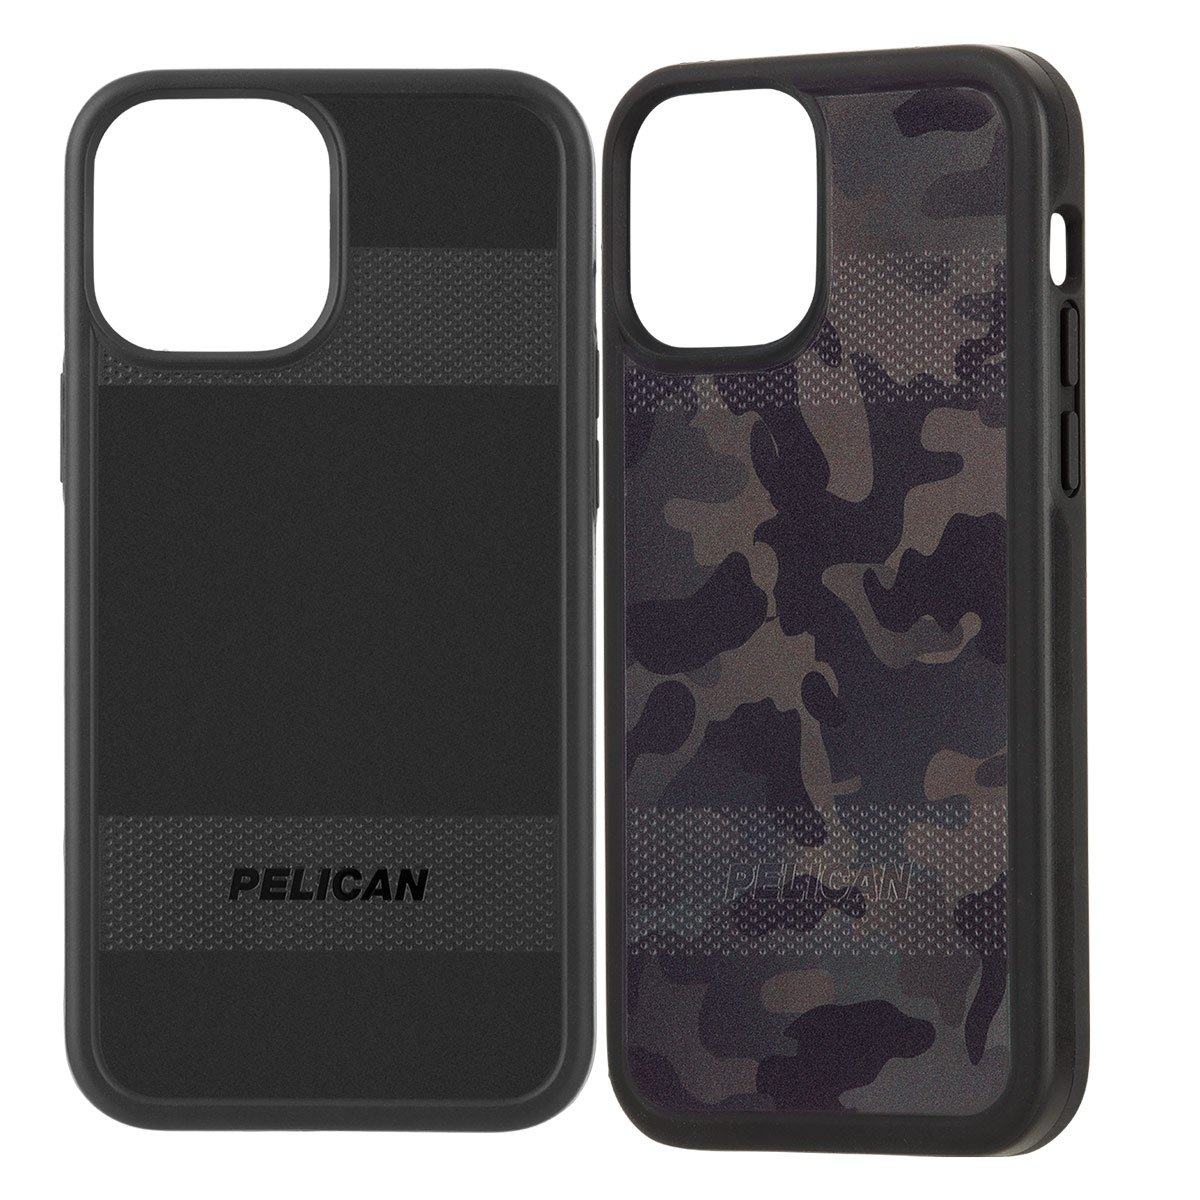 Pelican Protector Series 手機殼